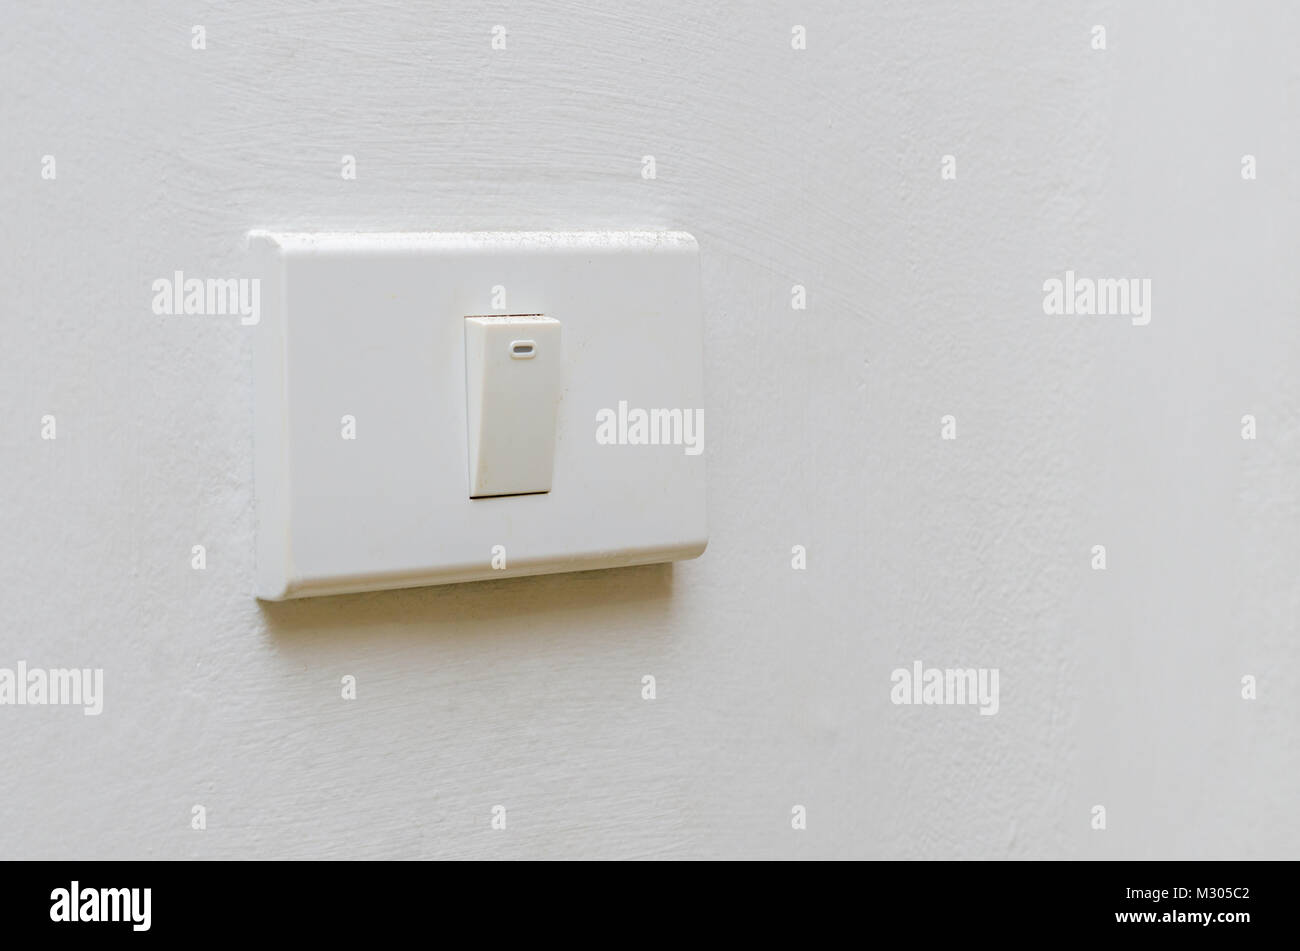 Turn Off Light Switch Stock Photos & Turn Off Light Switch Stock ...